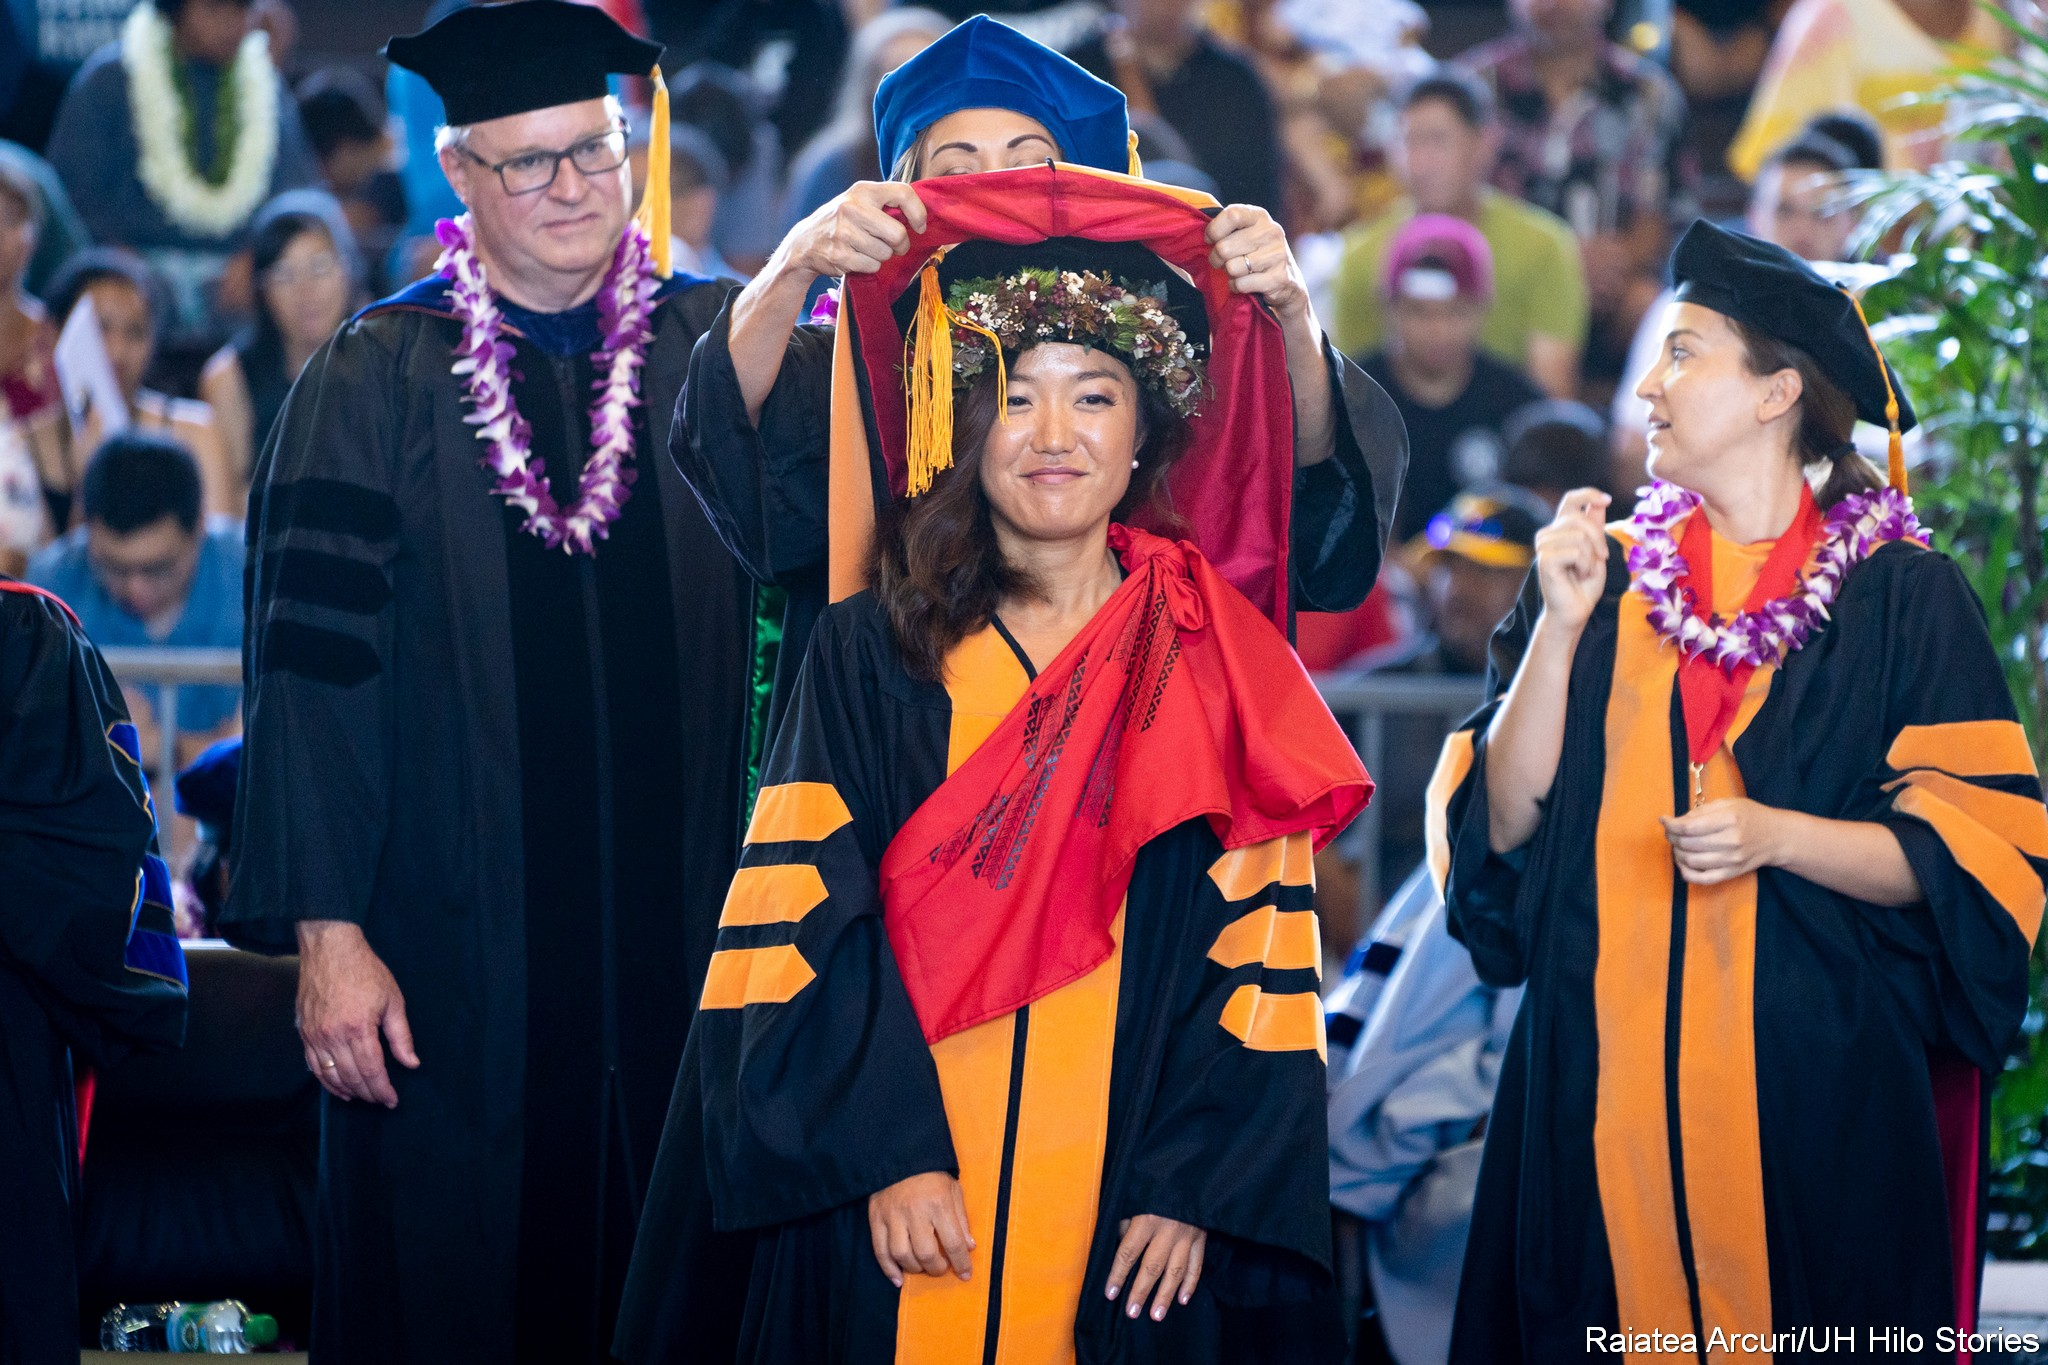 Red hood being placed on shoulders of female graduate.